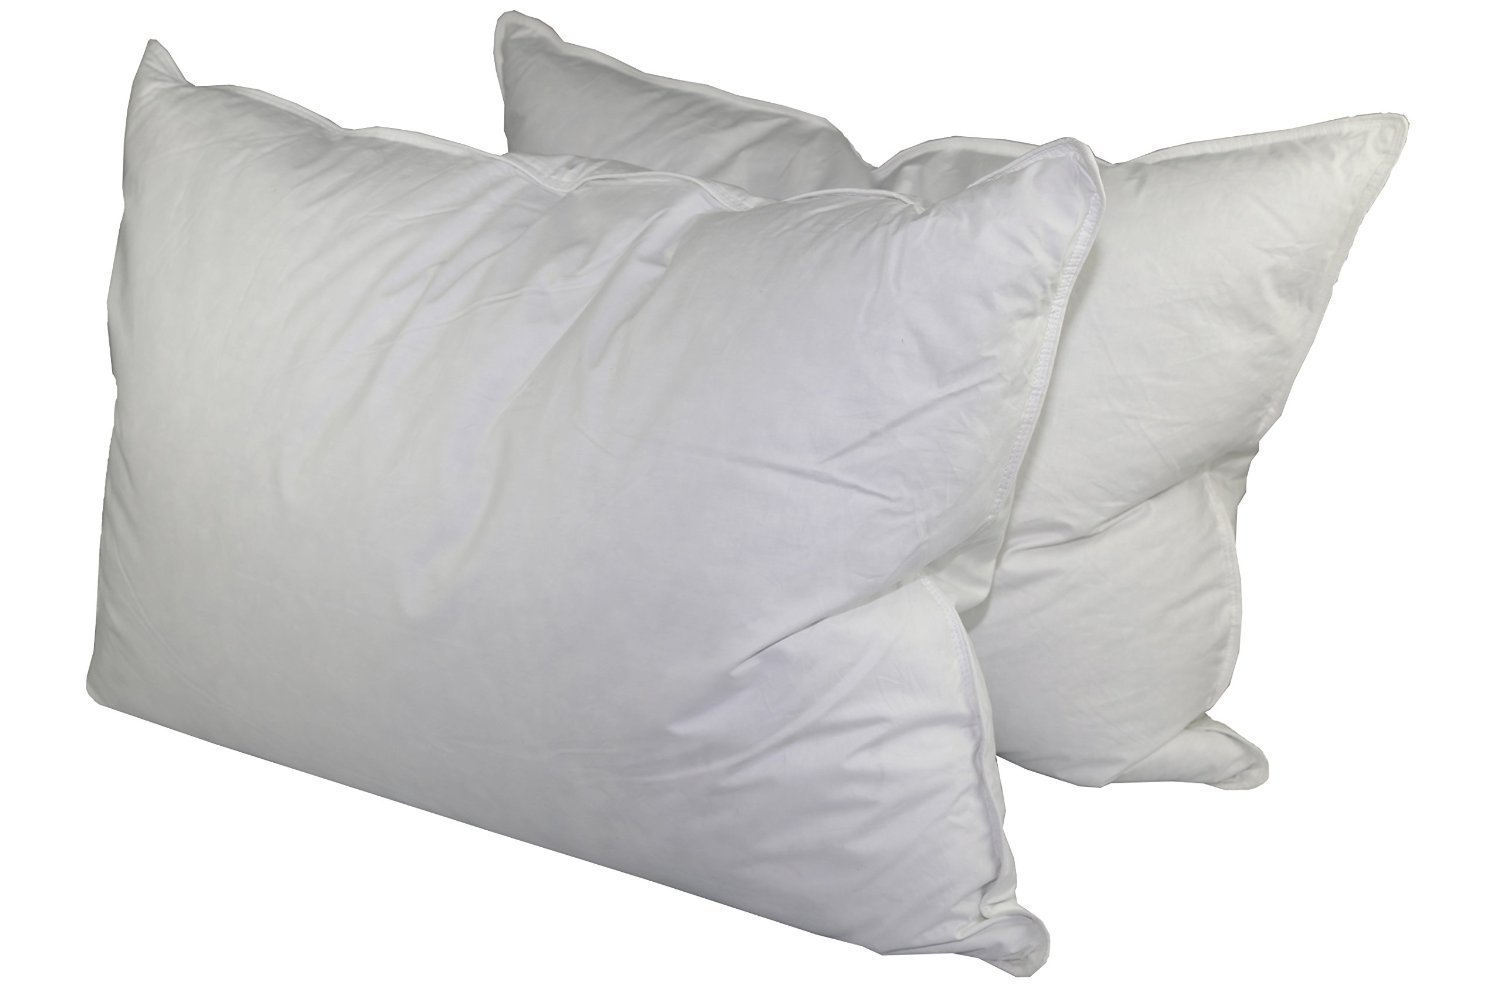 Down Dreams Standard Pillow Review The Pillow Report